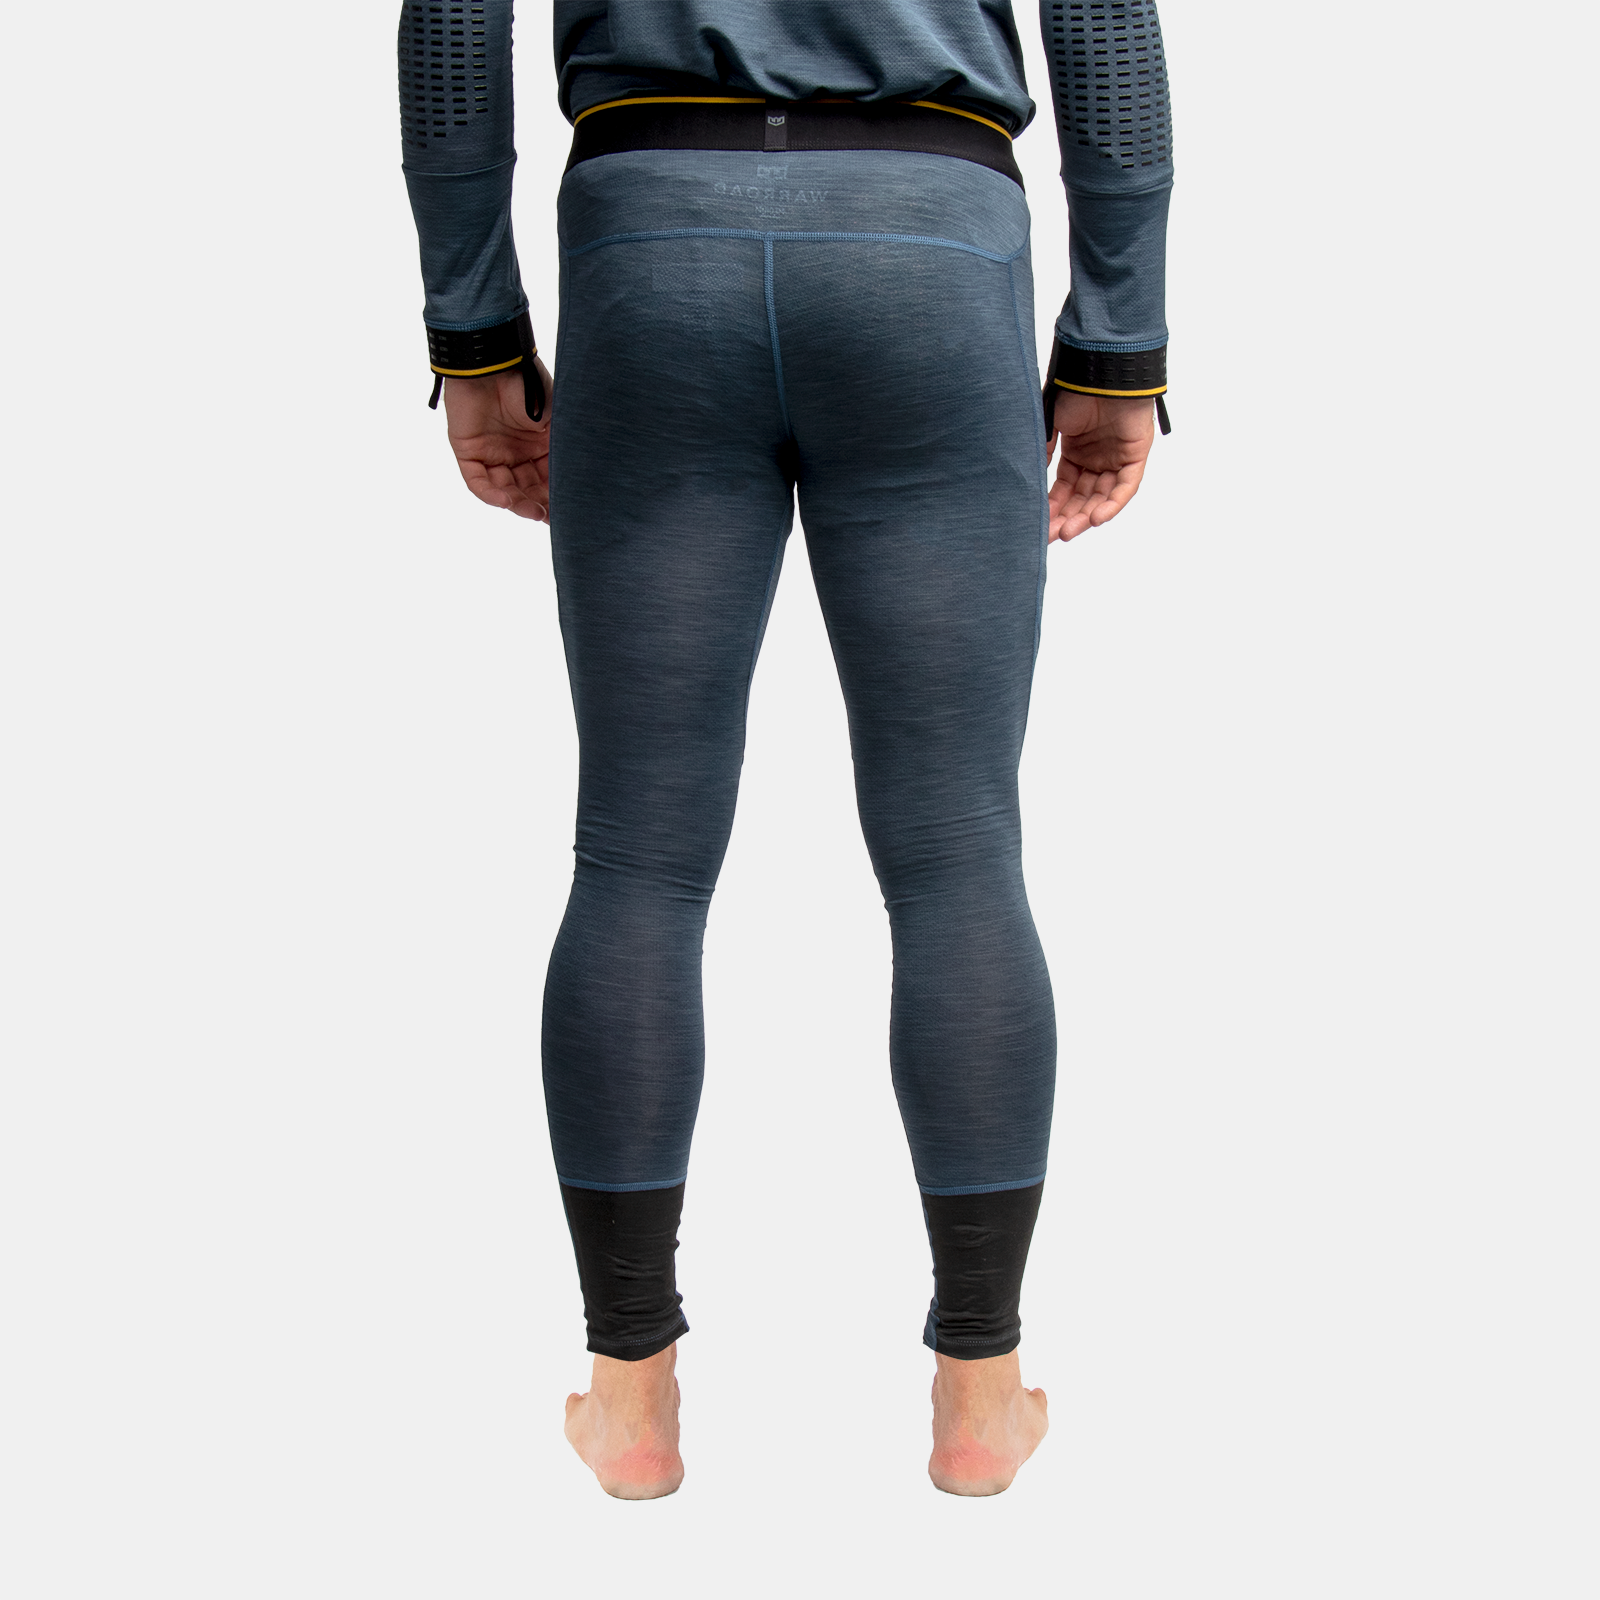 TILO Pro CR Bottoms - Olympic Blue